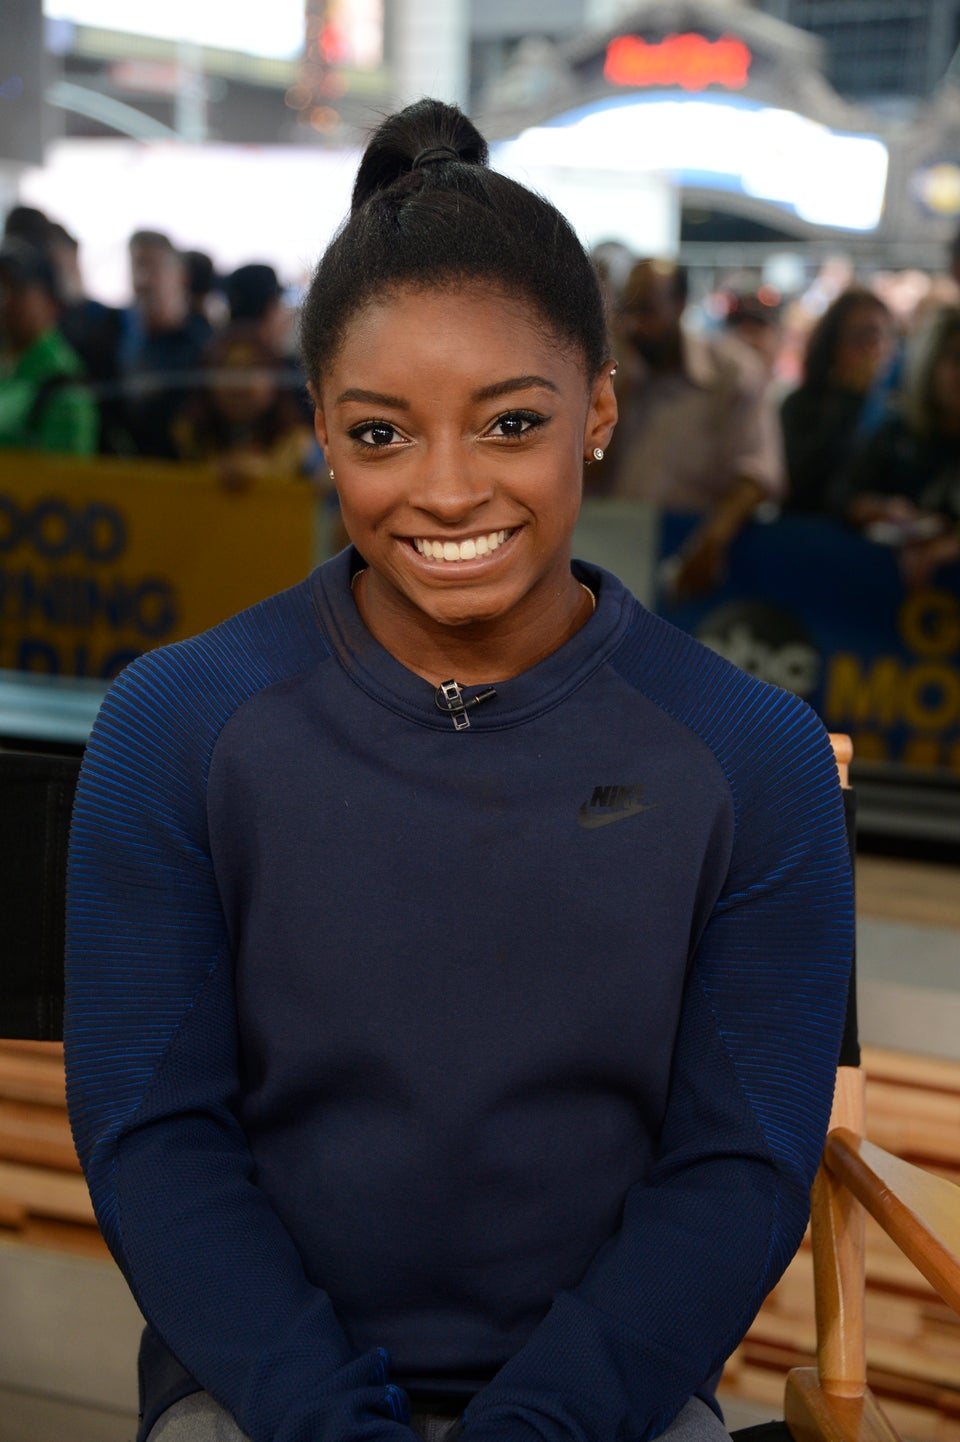 Simone Biles, Serena Williams Targeted By Russian Hackers